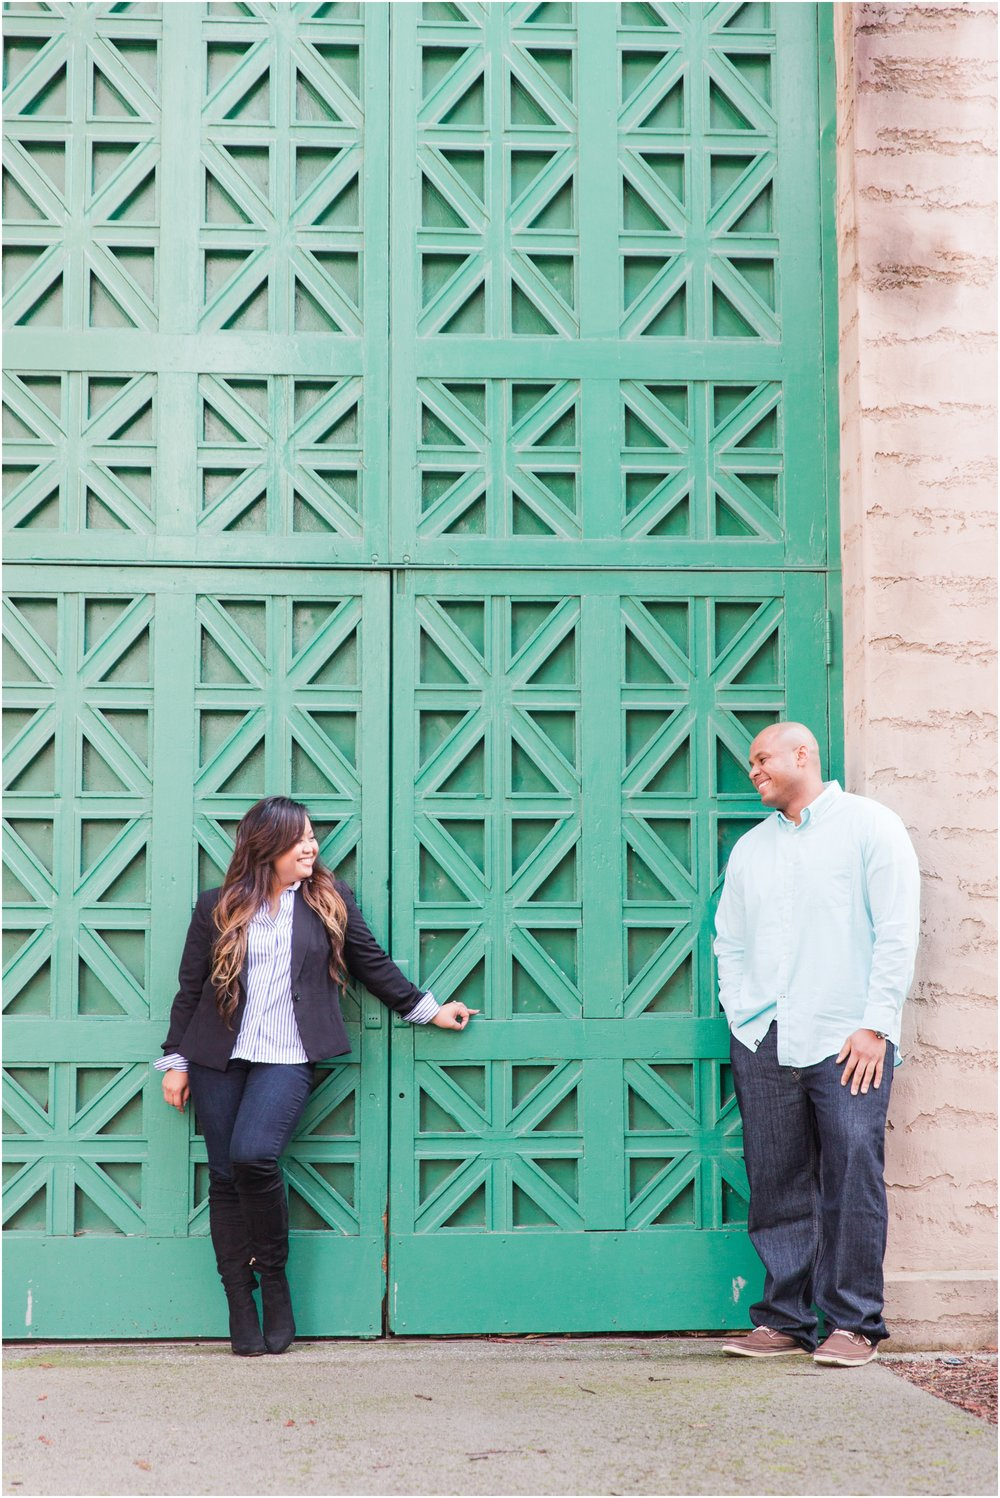 Engagement photos by Briana Calderon Photography based in the Greater Seattle & Tacoma, WA_0643.jpg